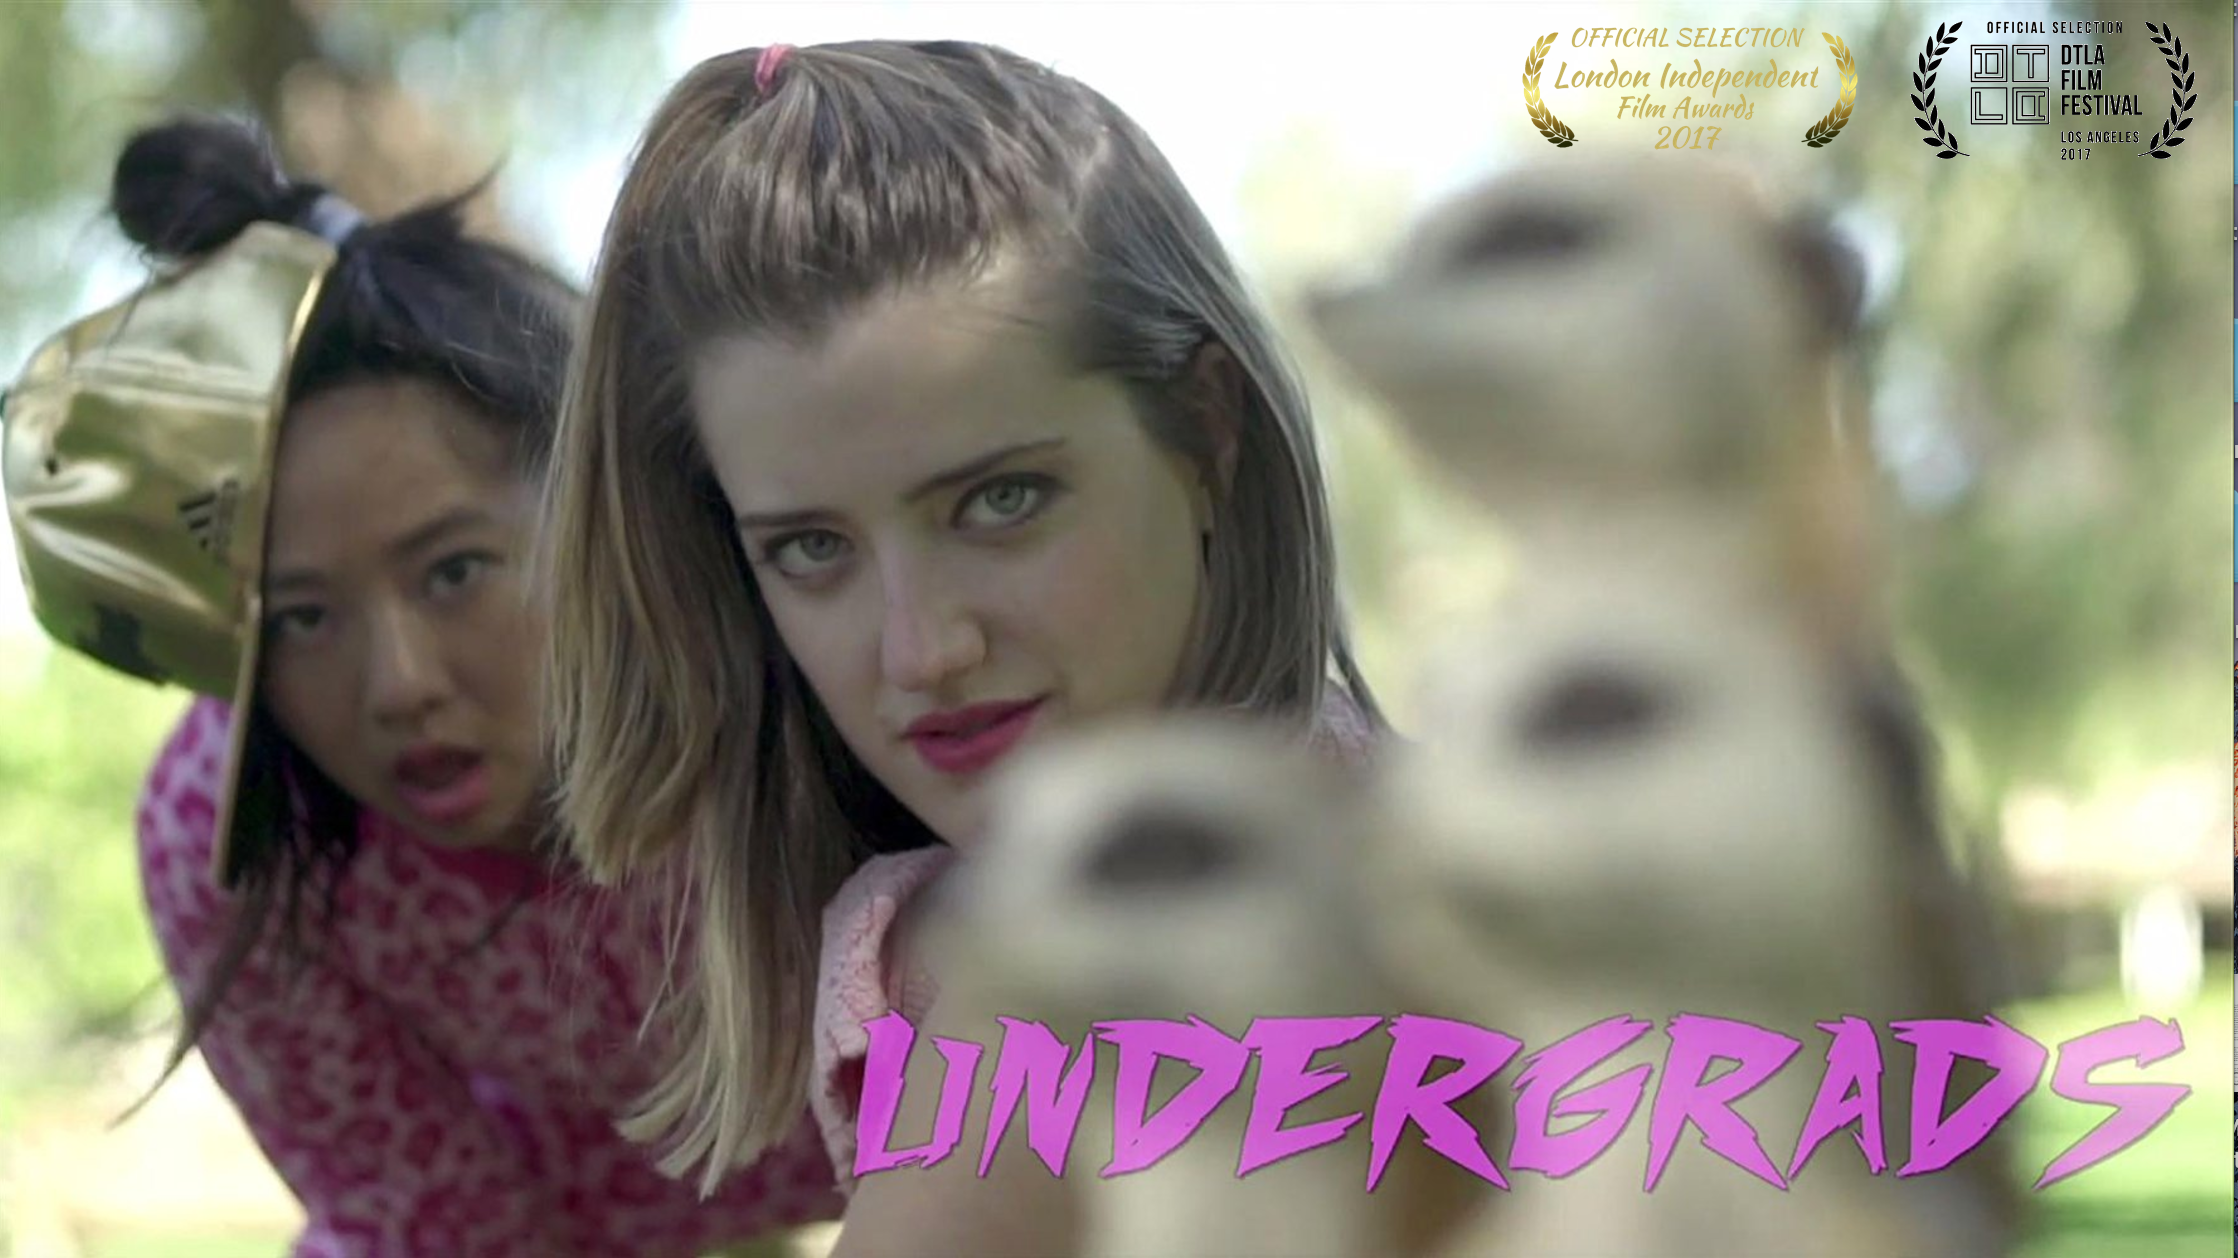 UNDERGRADS (TV Pilot)  - A half hour comedy series about two besties, Lilly and Rae, who struggle their way through college and learn to #adult while living with their two worst frenemies. Its their first day in the apartment and they must find a way to catch up on all of the summers TV, but buying cable is out of the question. So they must go on a journey to beg, borrow or steal their friends streaming services. UNDERGRADS is premiering at the DTLA Film Festival  on September 24, 2017